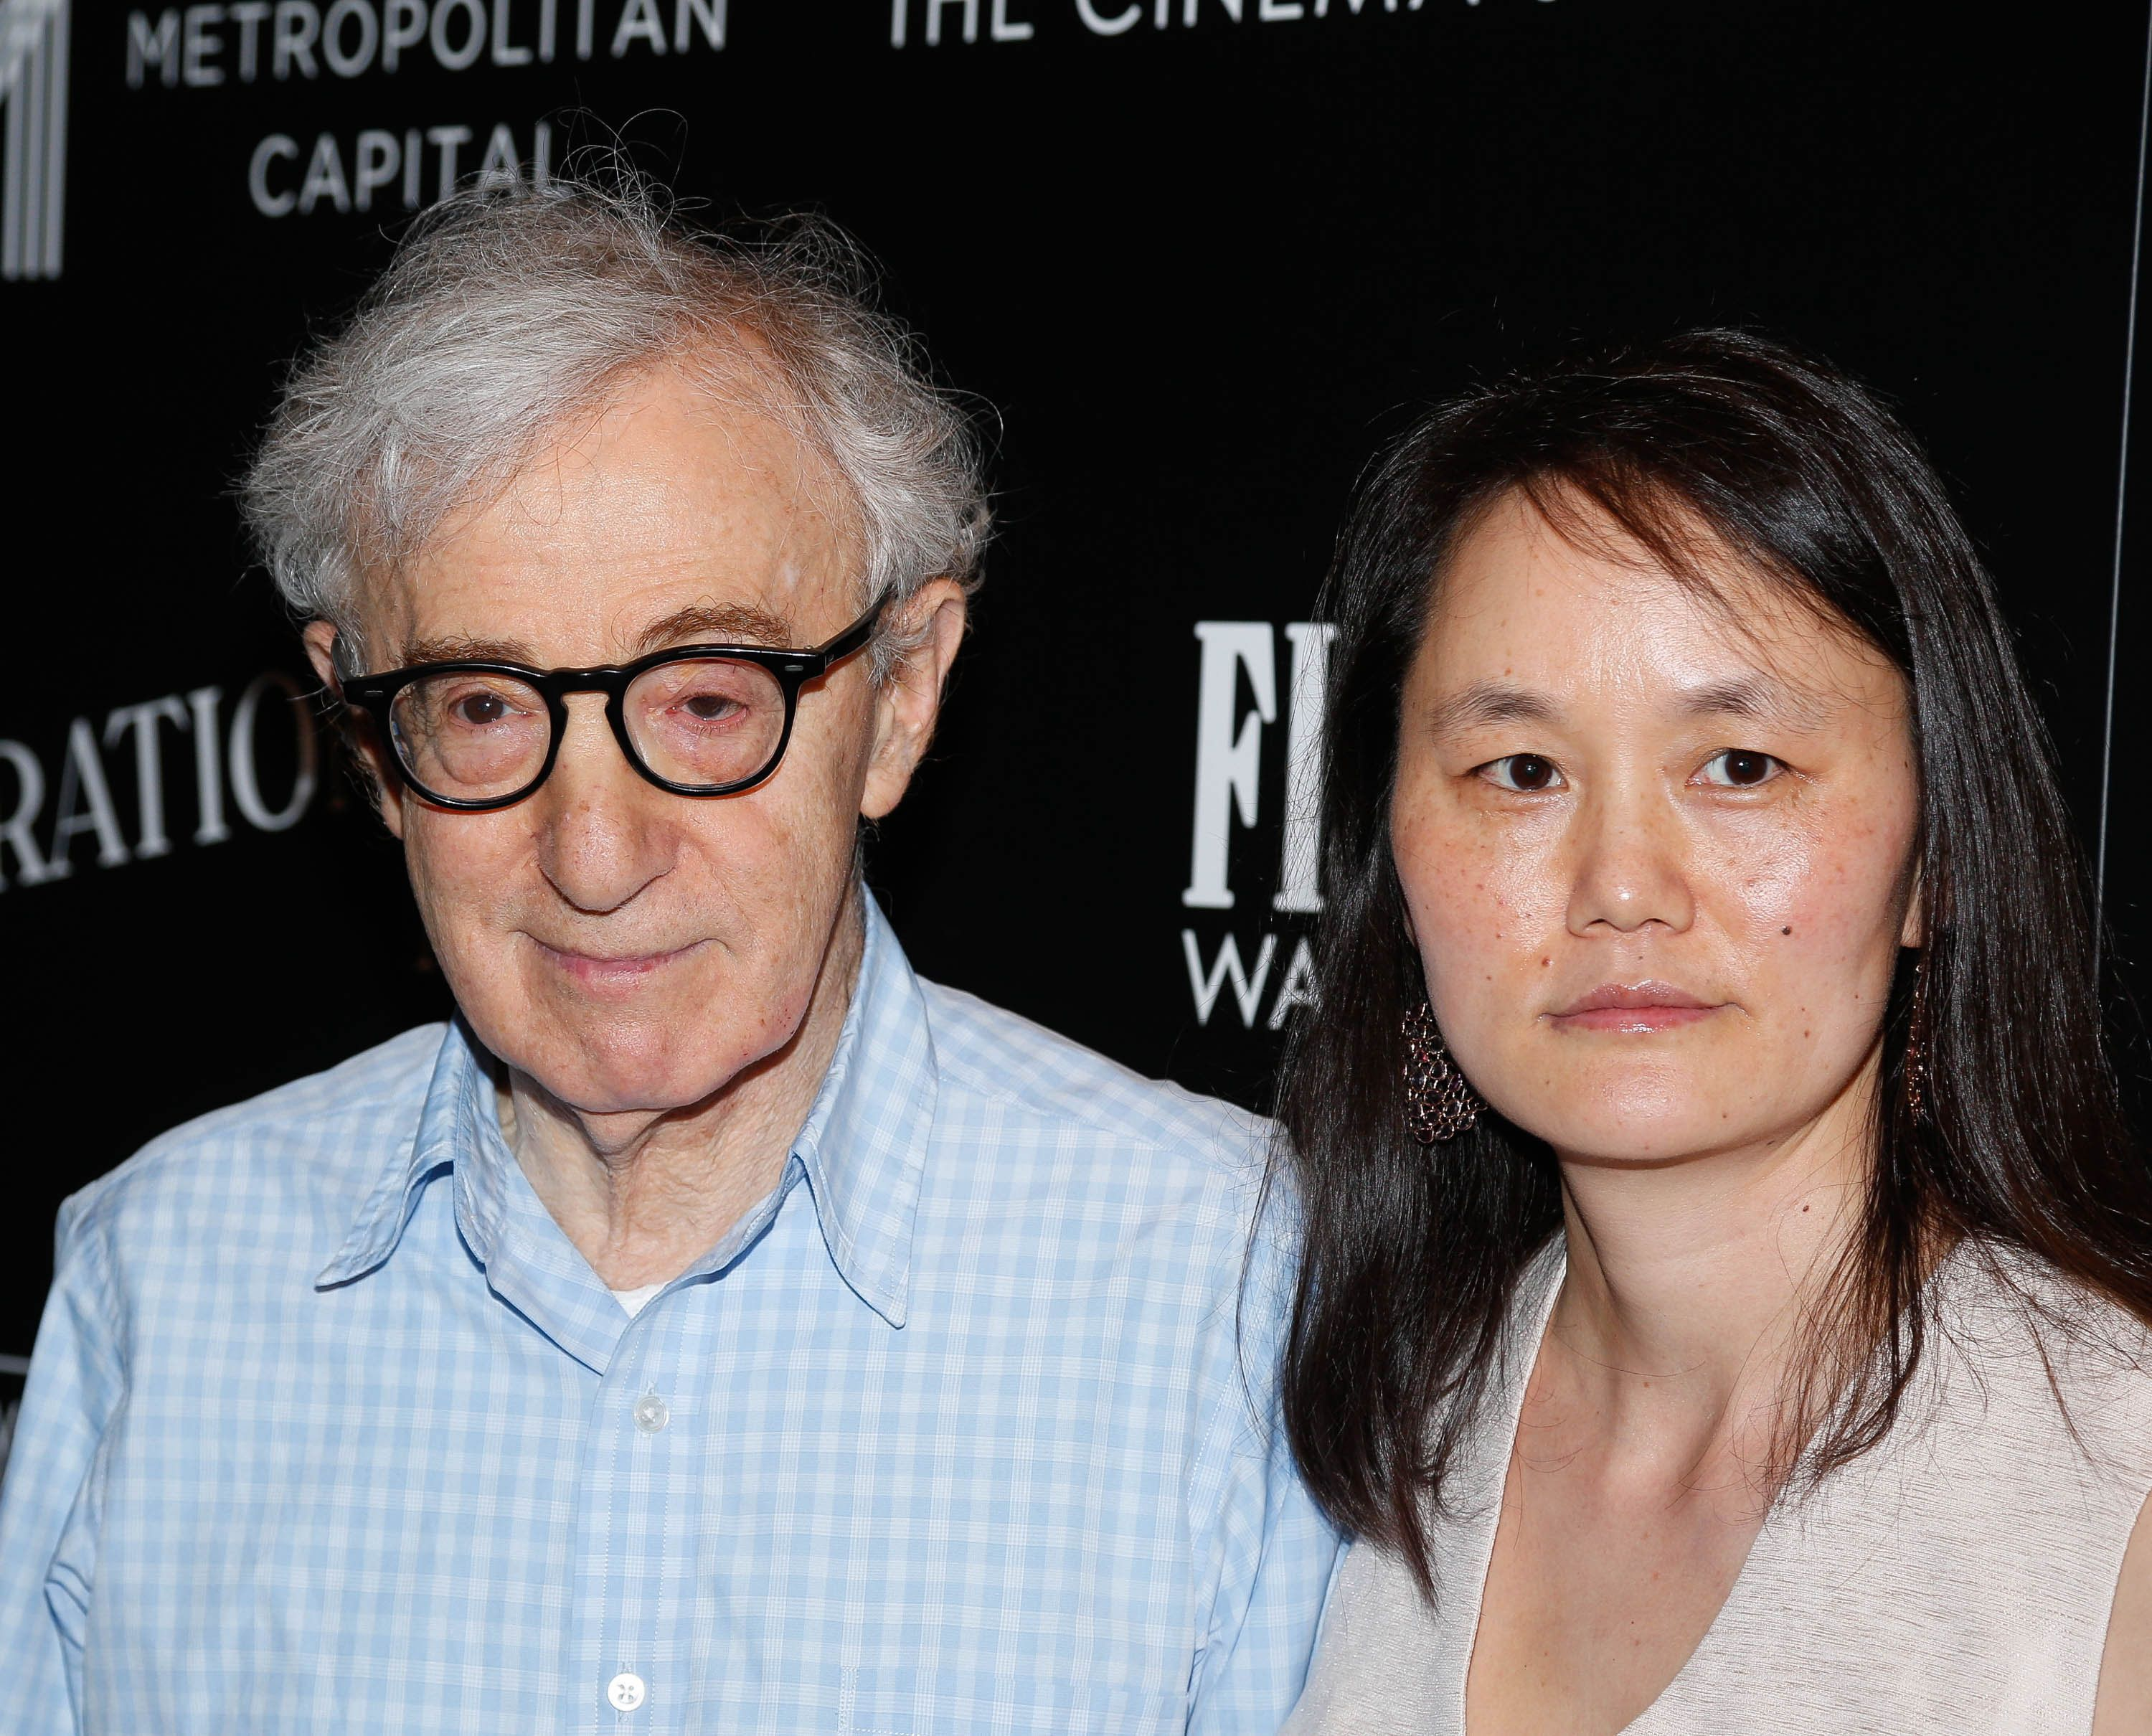 Woody Allen and Soon-Yi Previn married each other in 1997.